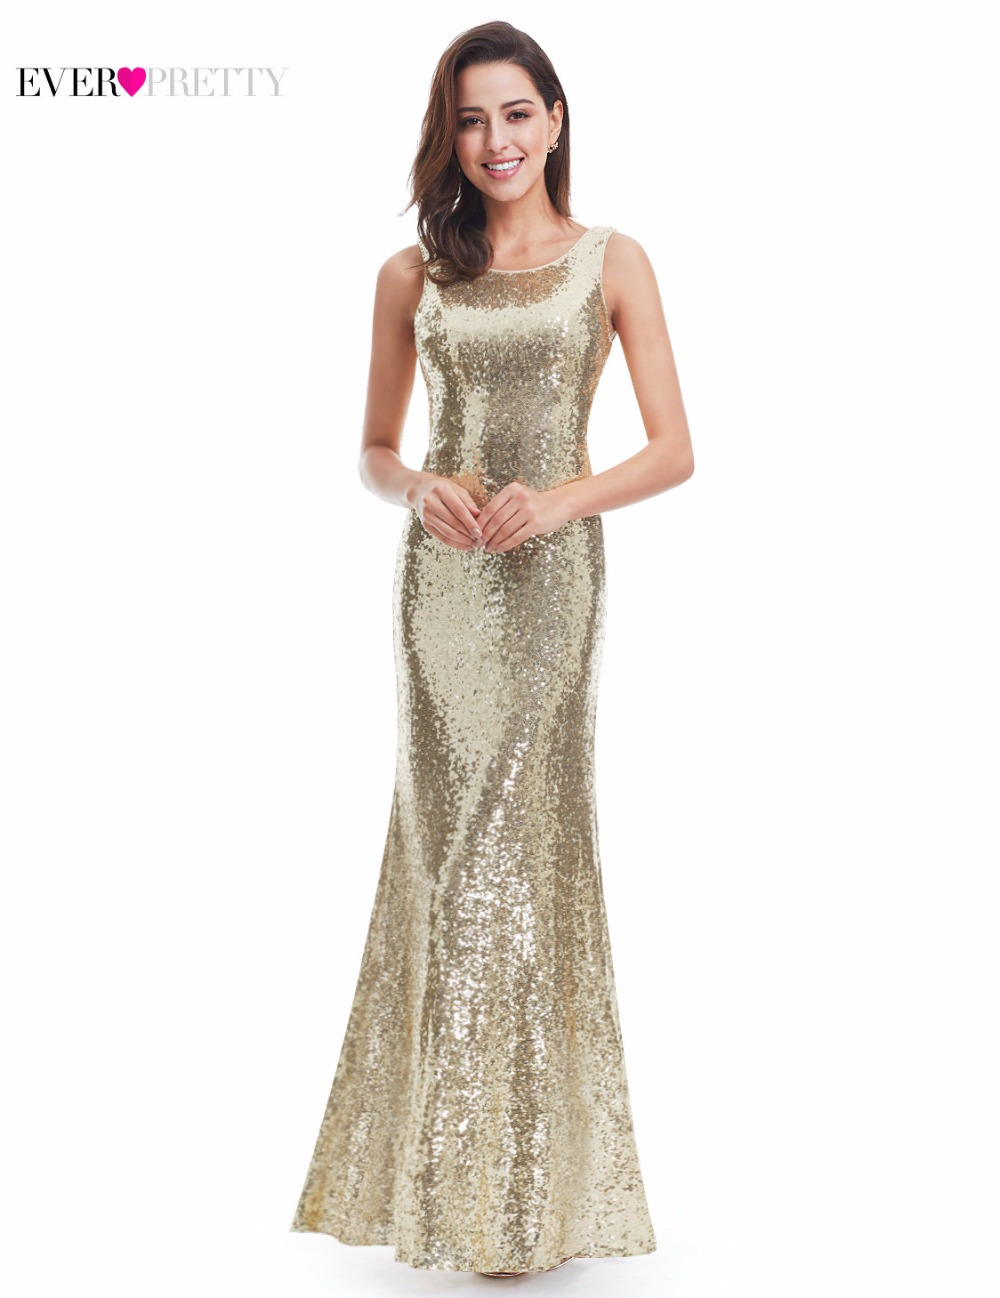 Image 2 - Long Sparkle Prom Dresses Ever Pretty 2019 New V Back Women Elegant XXDG01170PEC Sequin Mermaid Maxi Gold Evening Party Dresses-in Prom Dresses from Weddings & Events